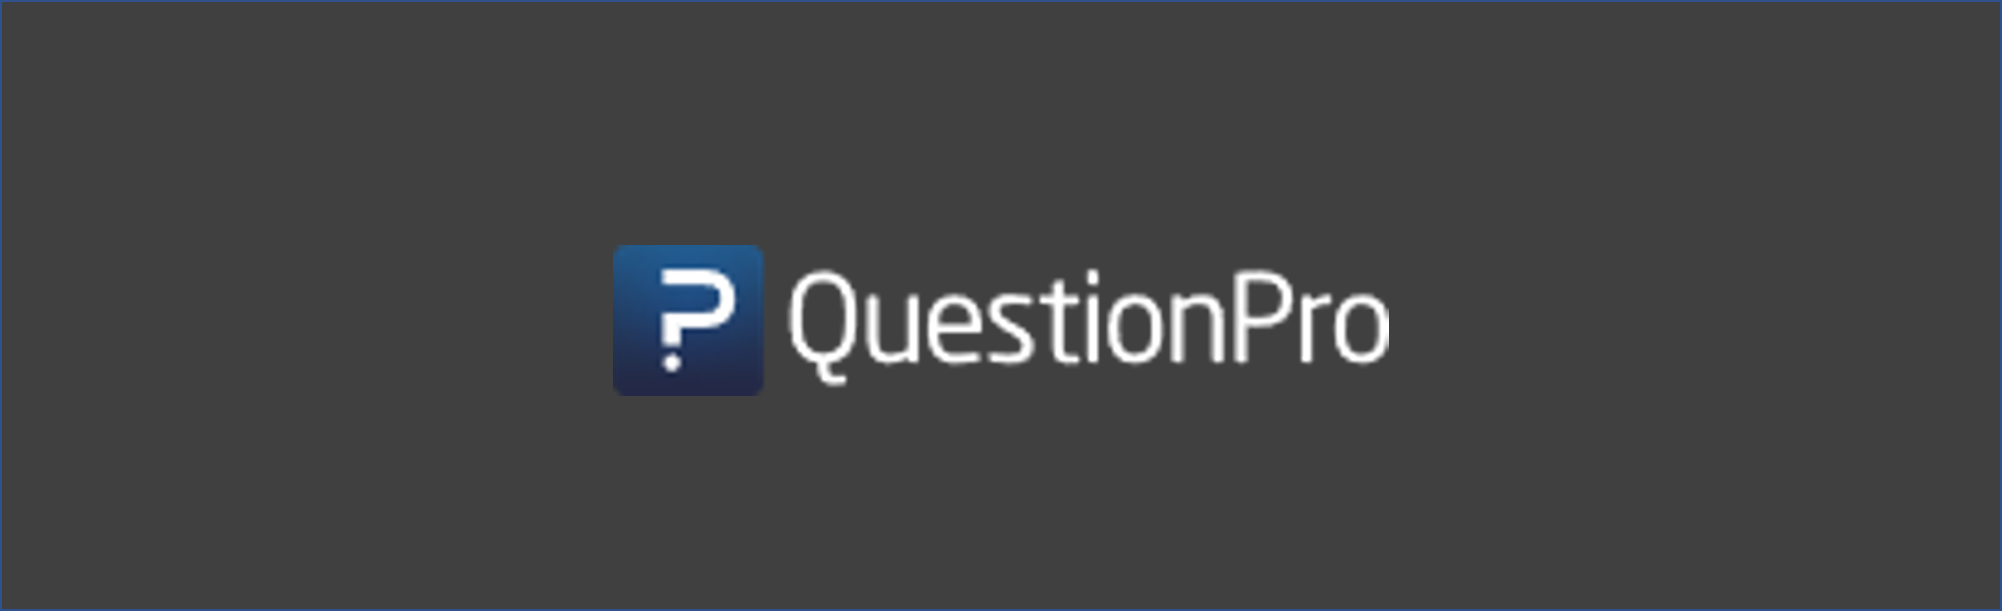 Guest Blog for QuestionPro: 5 Ways to DIY Your Way to Better Customer Insights